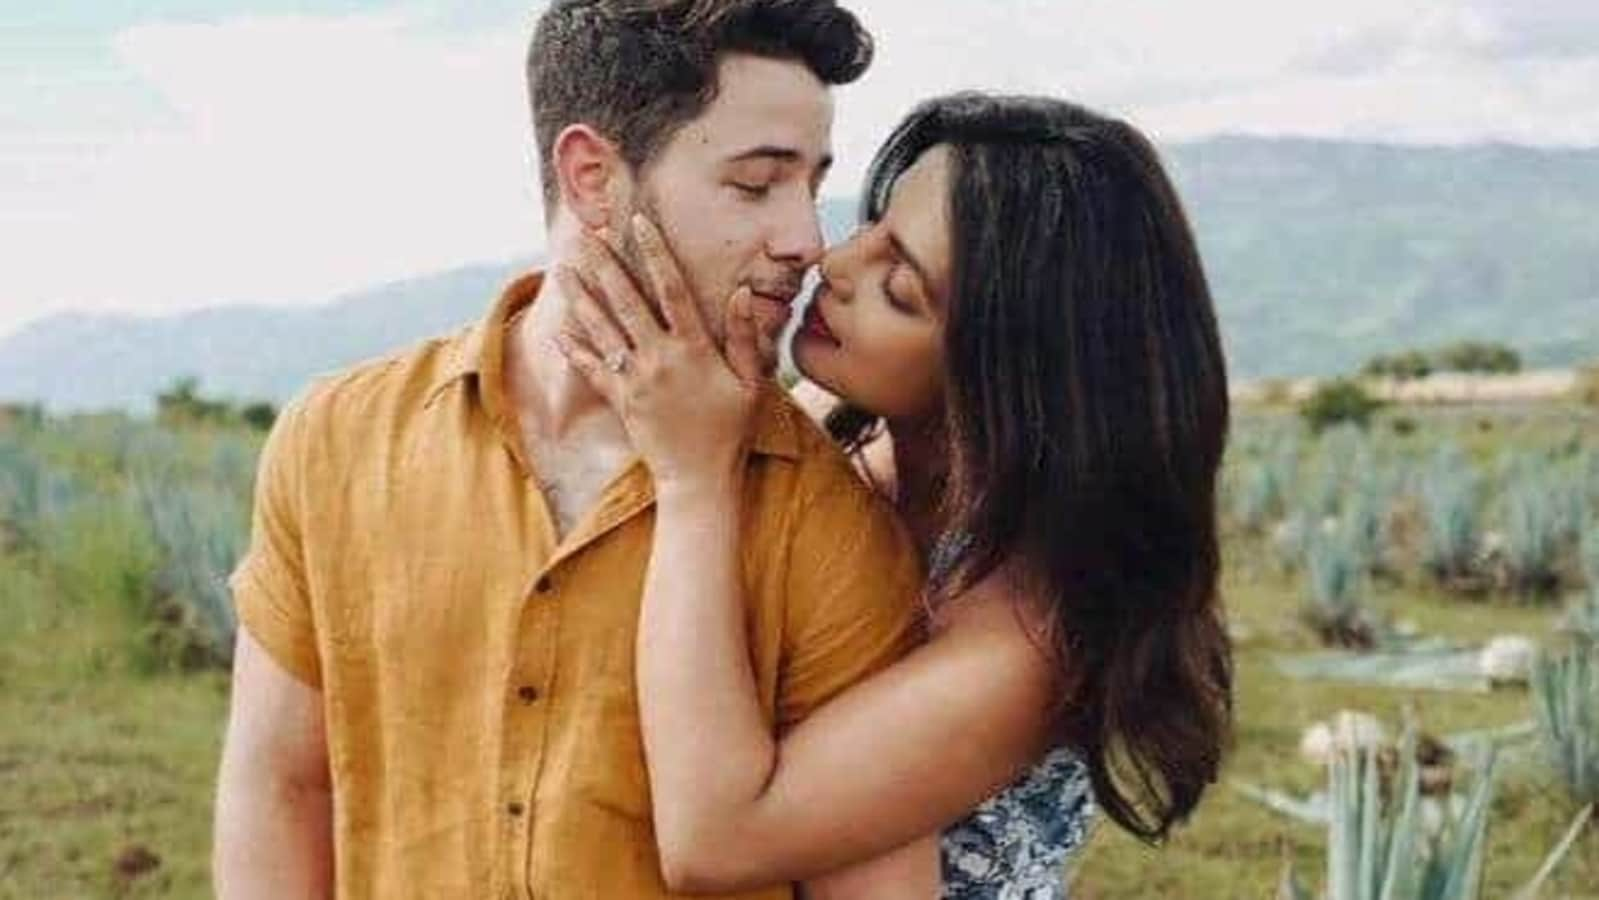 Nick Jonas on what separates Priyanka Chopra from 'some of the most beautiful women on the planet' he's dated before - Hindustan Times